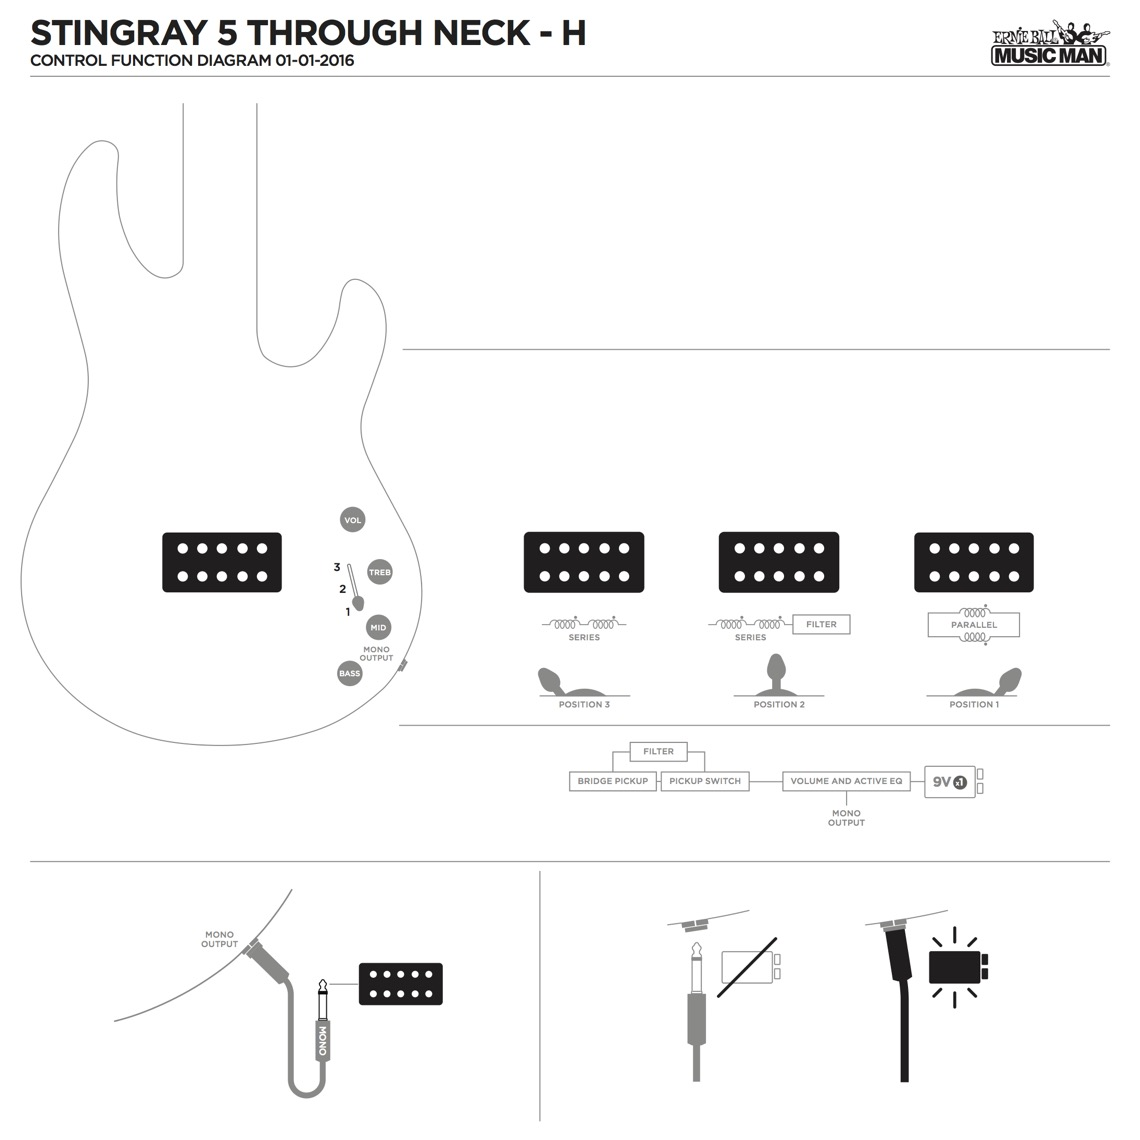 Stingray 5 Through Neck